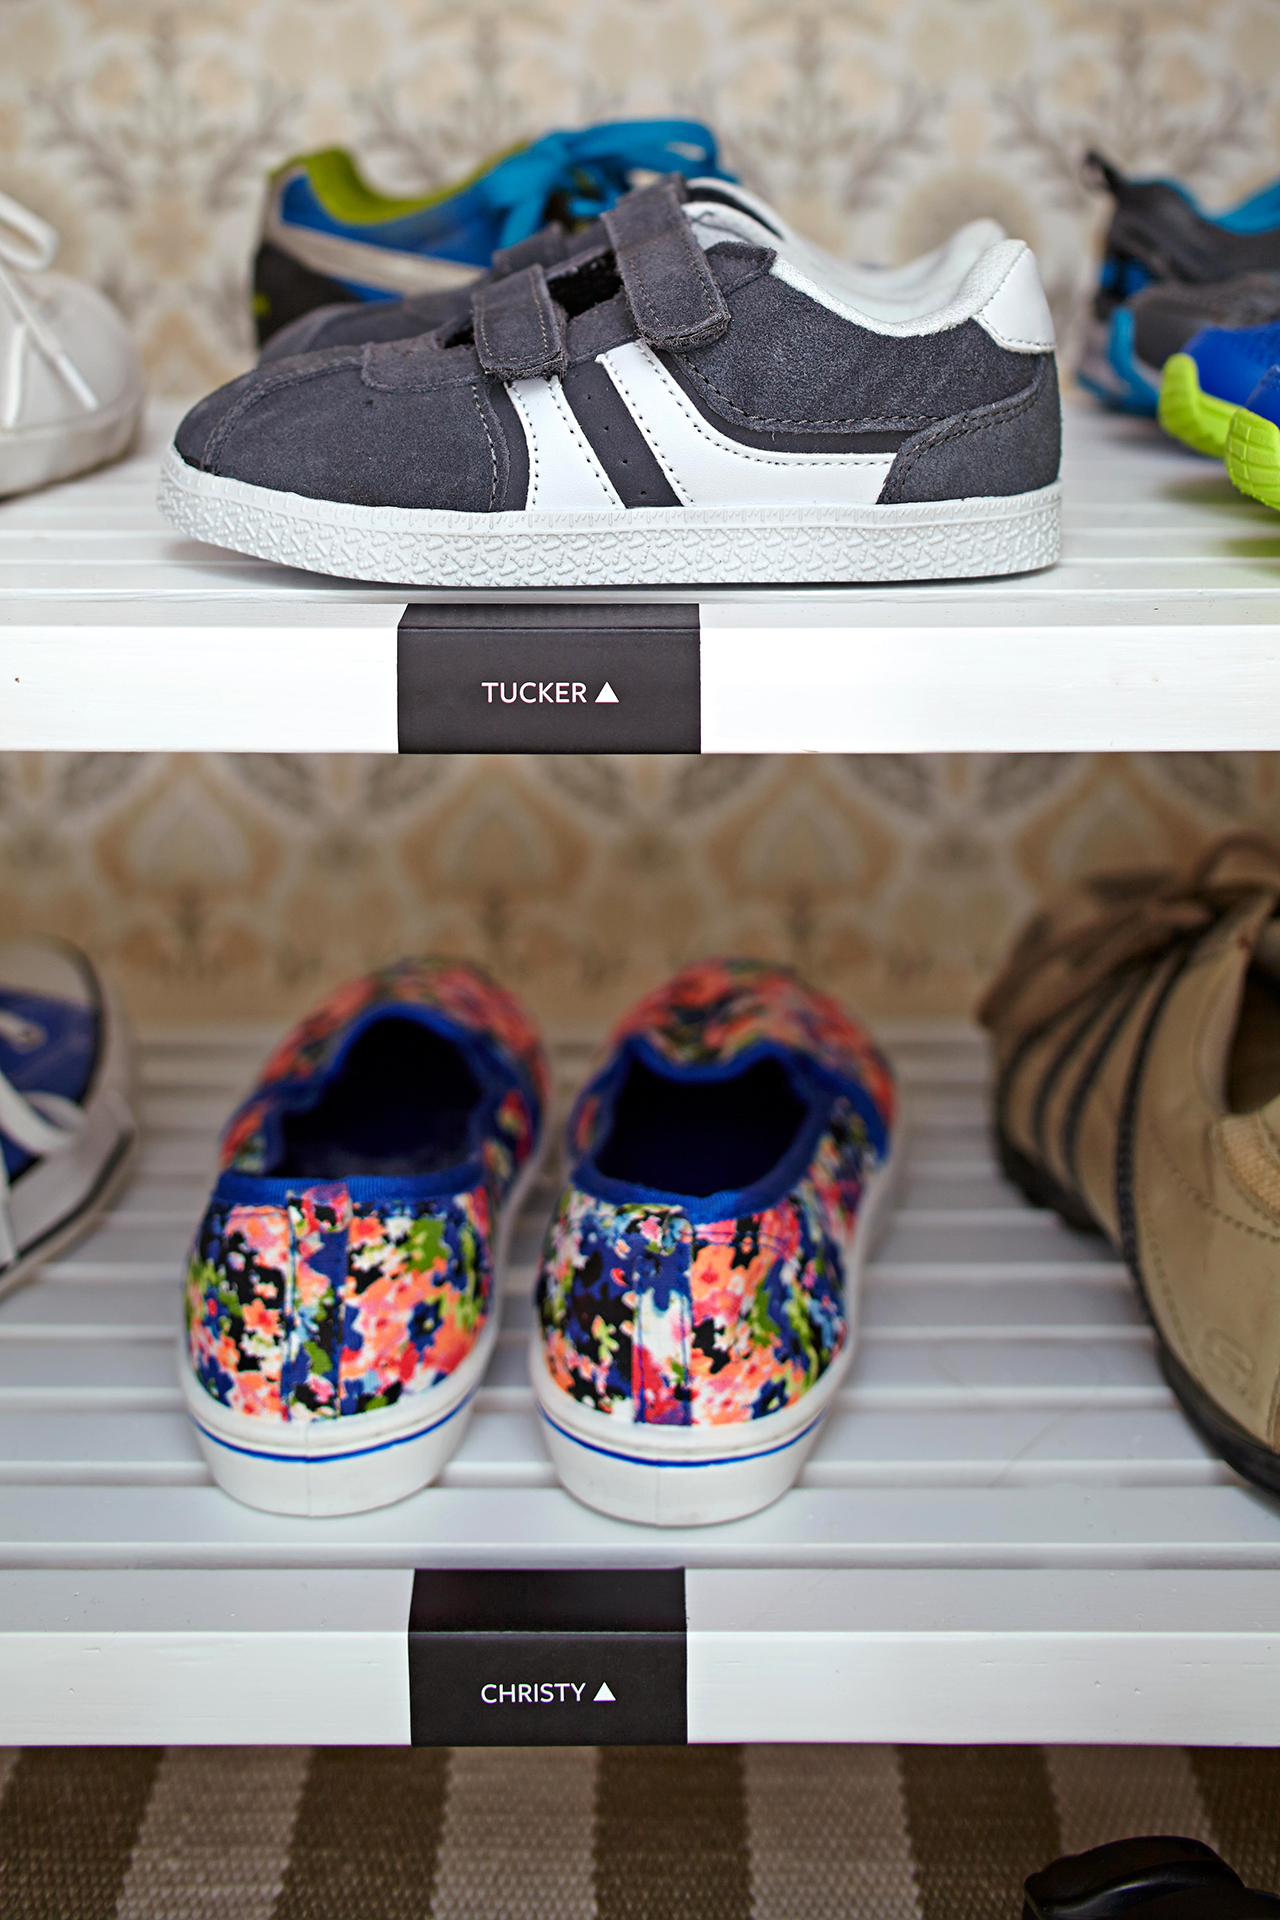 childrens shoes on labelled shelves